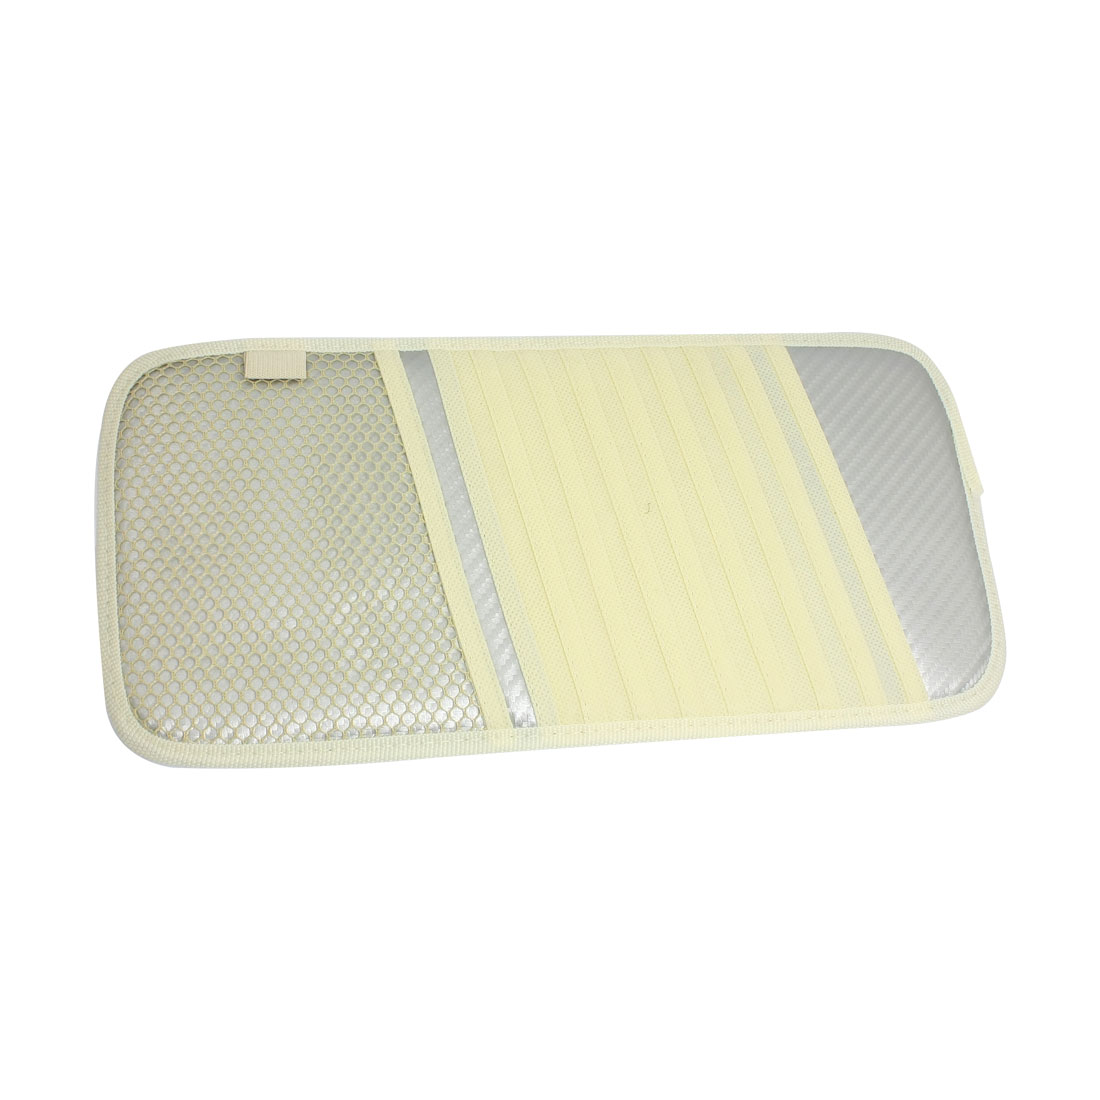 Car Interior Sun Visor 10 Pieces DVD CD Holder Pocket Case Beige